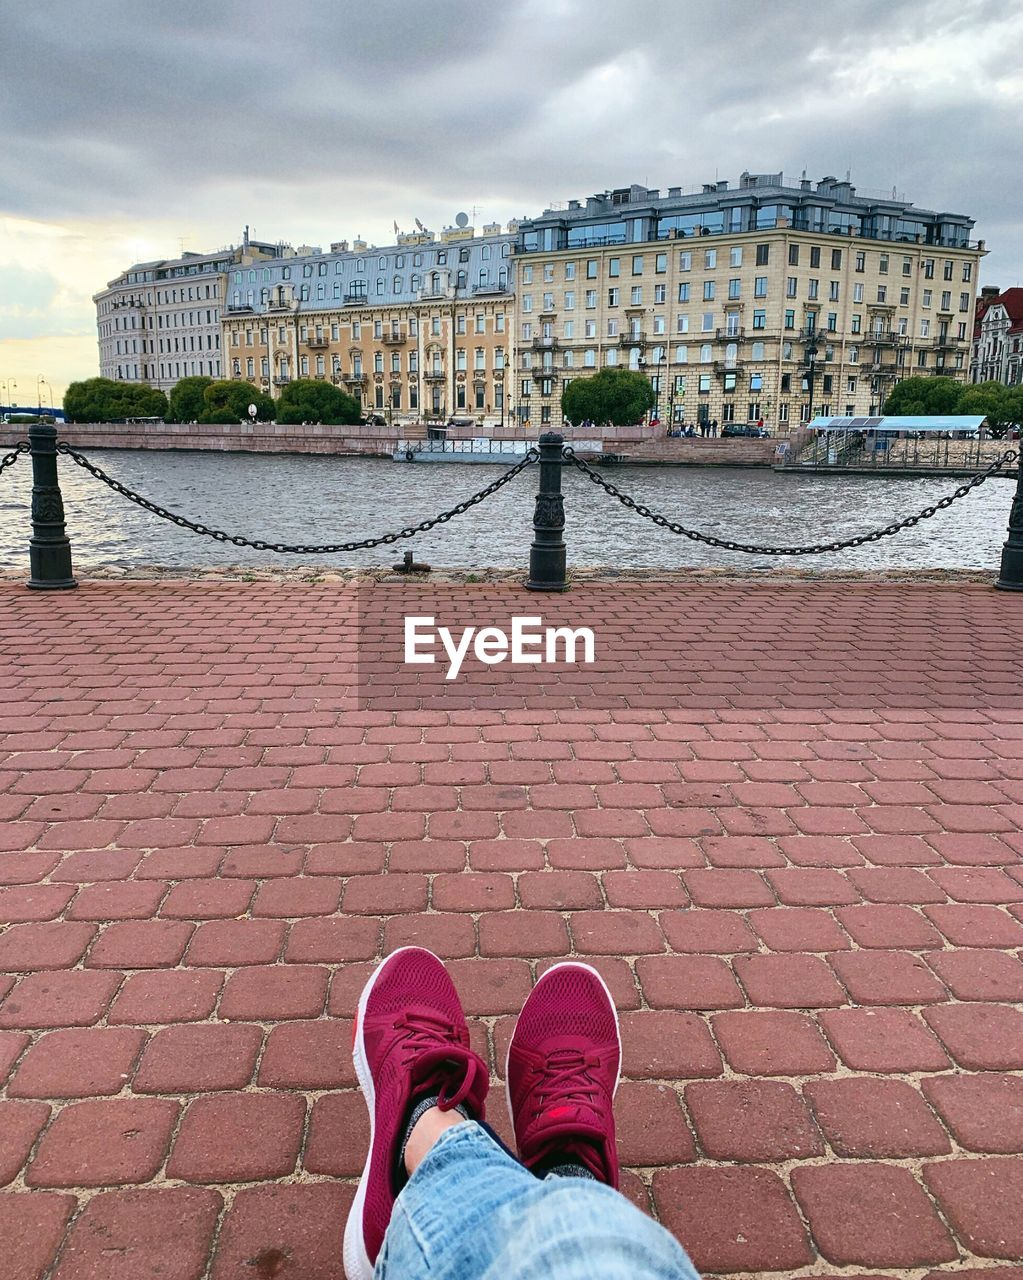 architecture, real people, low section, human leg, human body part, city, personal perspective, built structure, one person, shoe, water, body part, lifestyles, building exterior, sky, standing, cloud - sky, river, outdoors, jeans, human foot, human limb